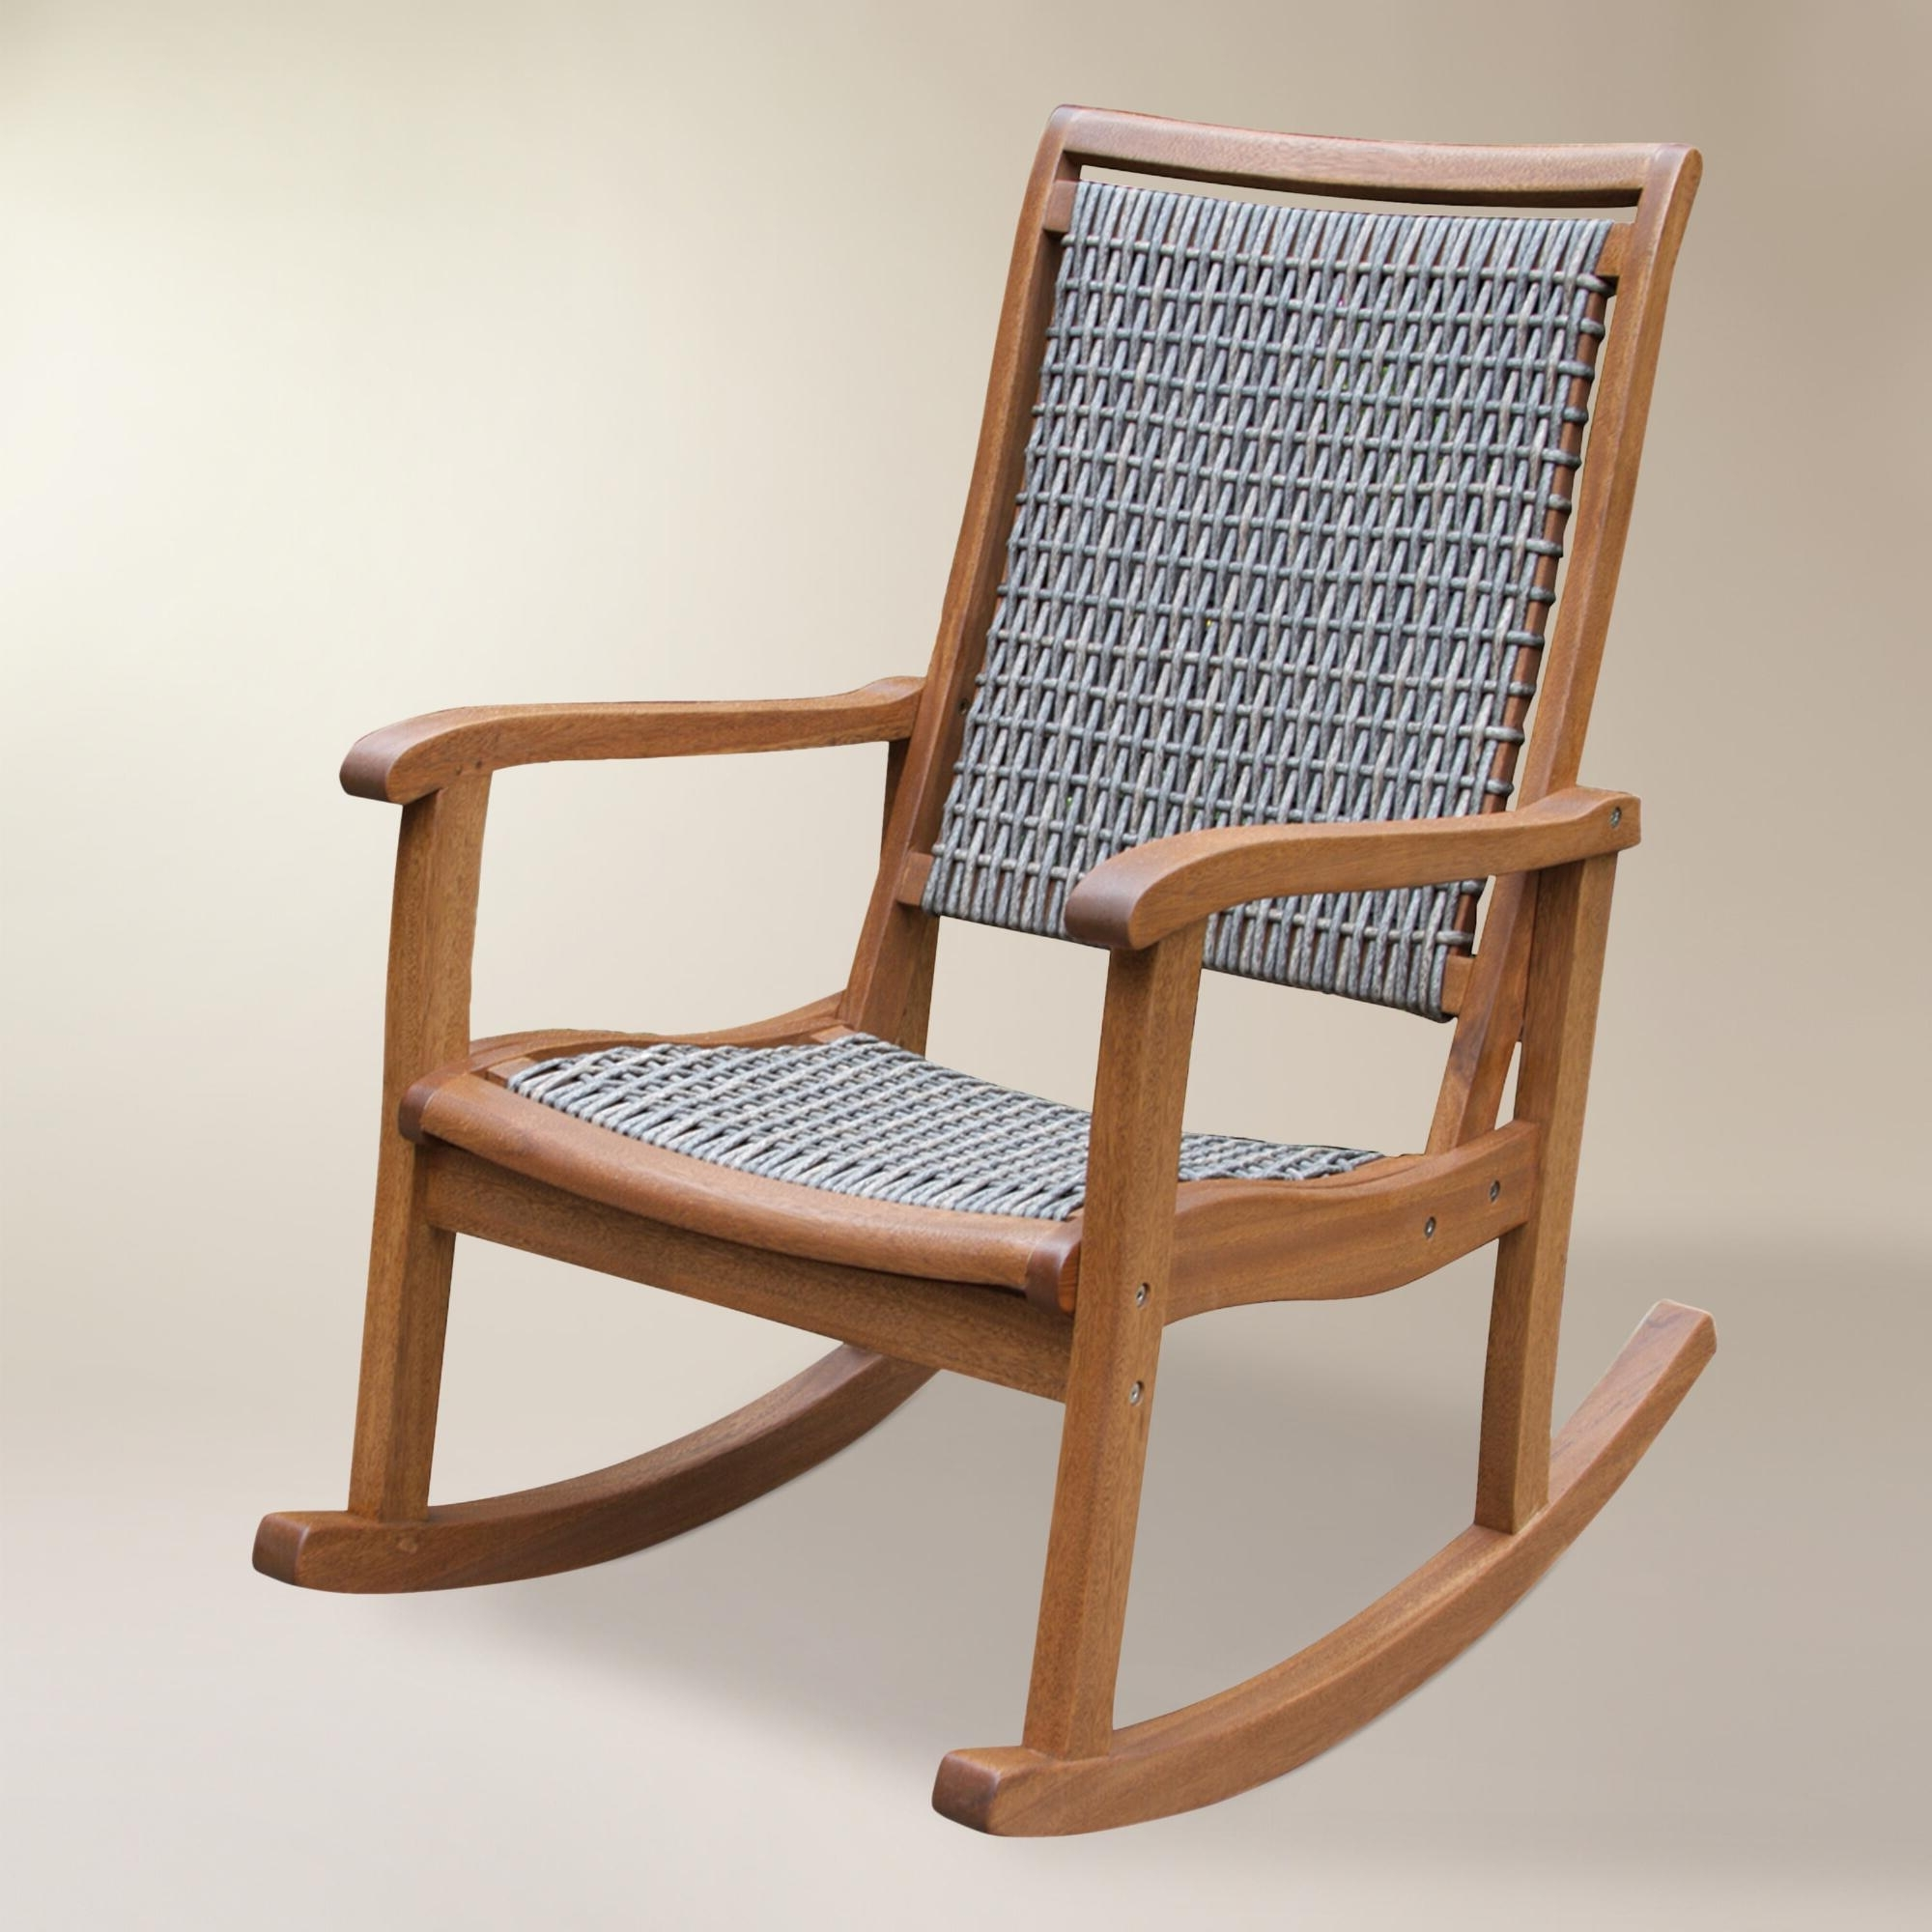 Marvellous Design Indoor Wicker Rocking Chair Coral Coast Soho High In Fashionable Indoor Wicker Rocking Chairs (View 16 of 20)